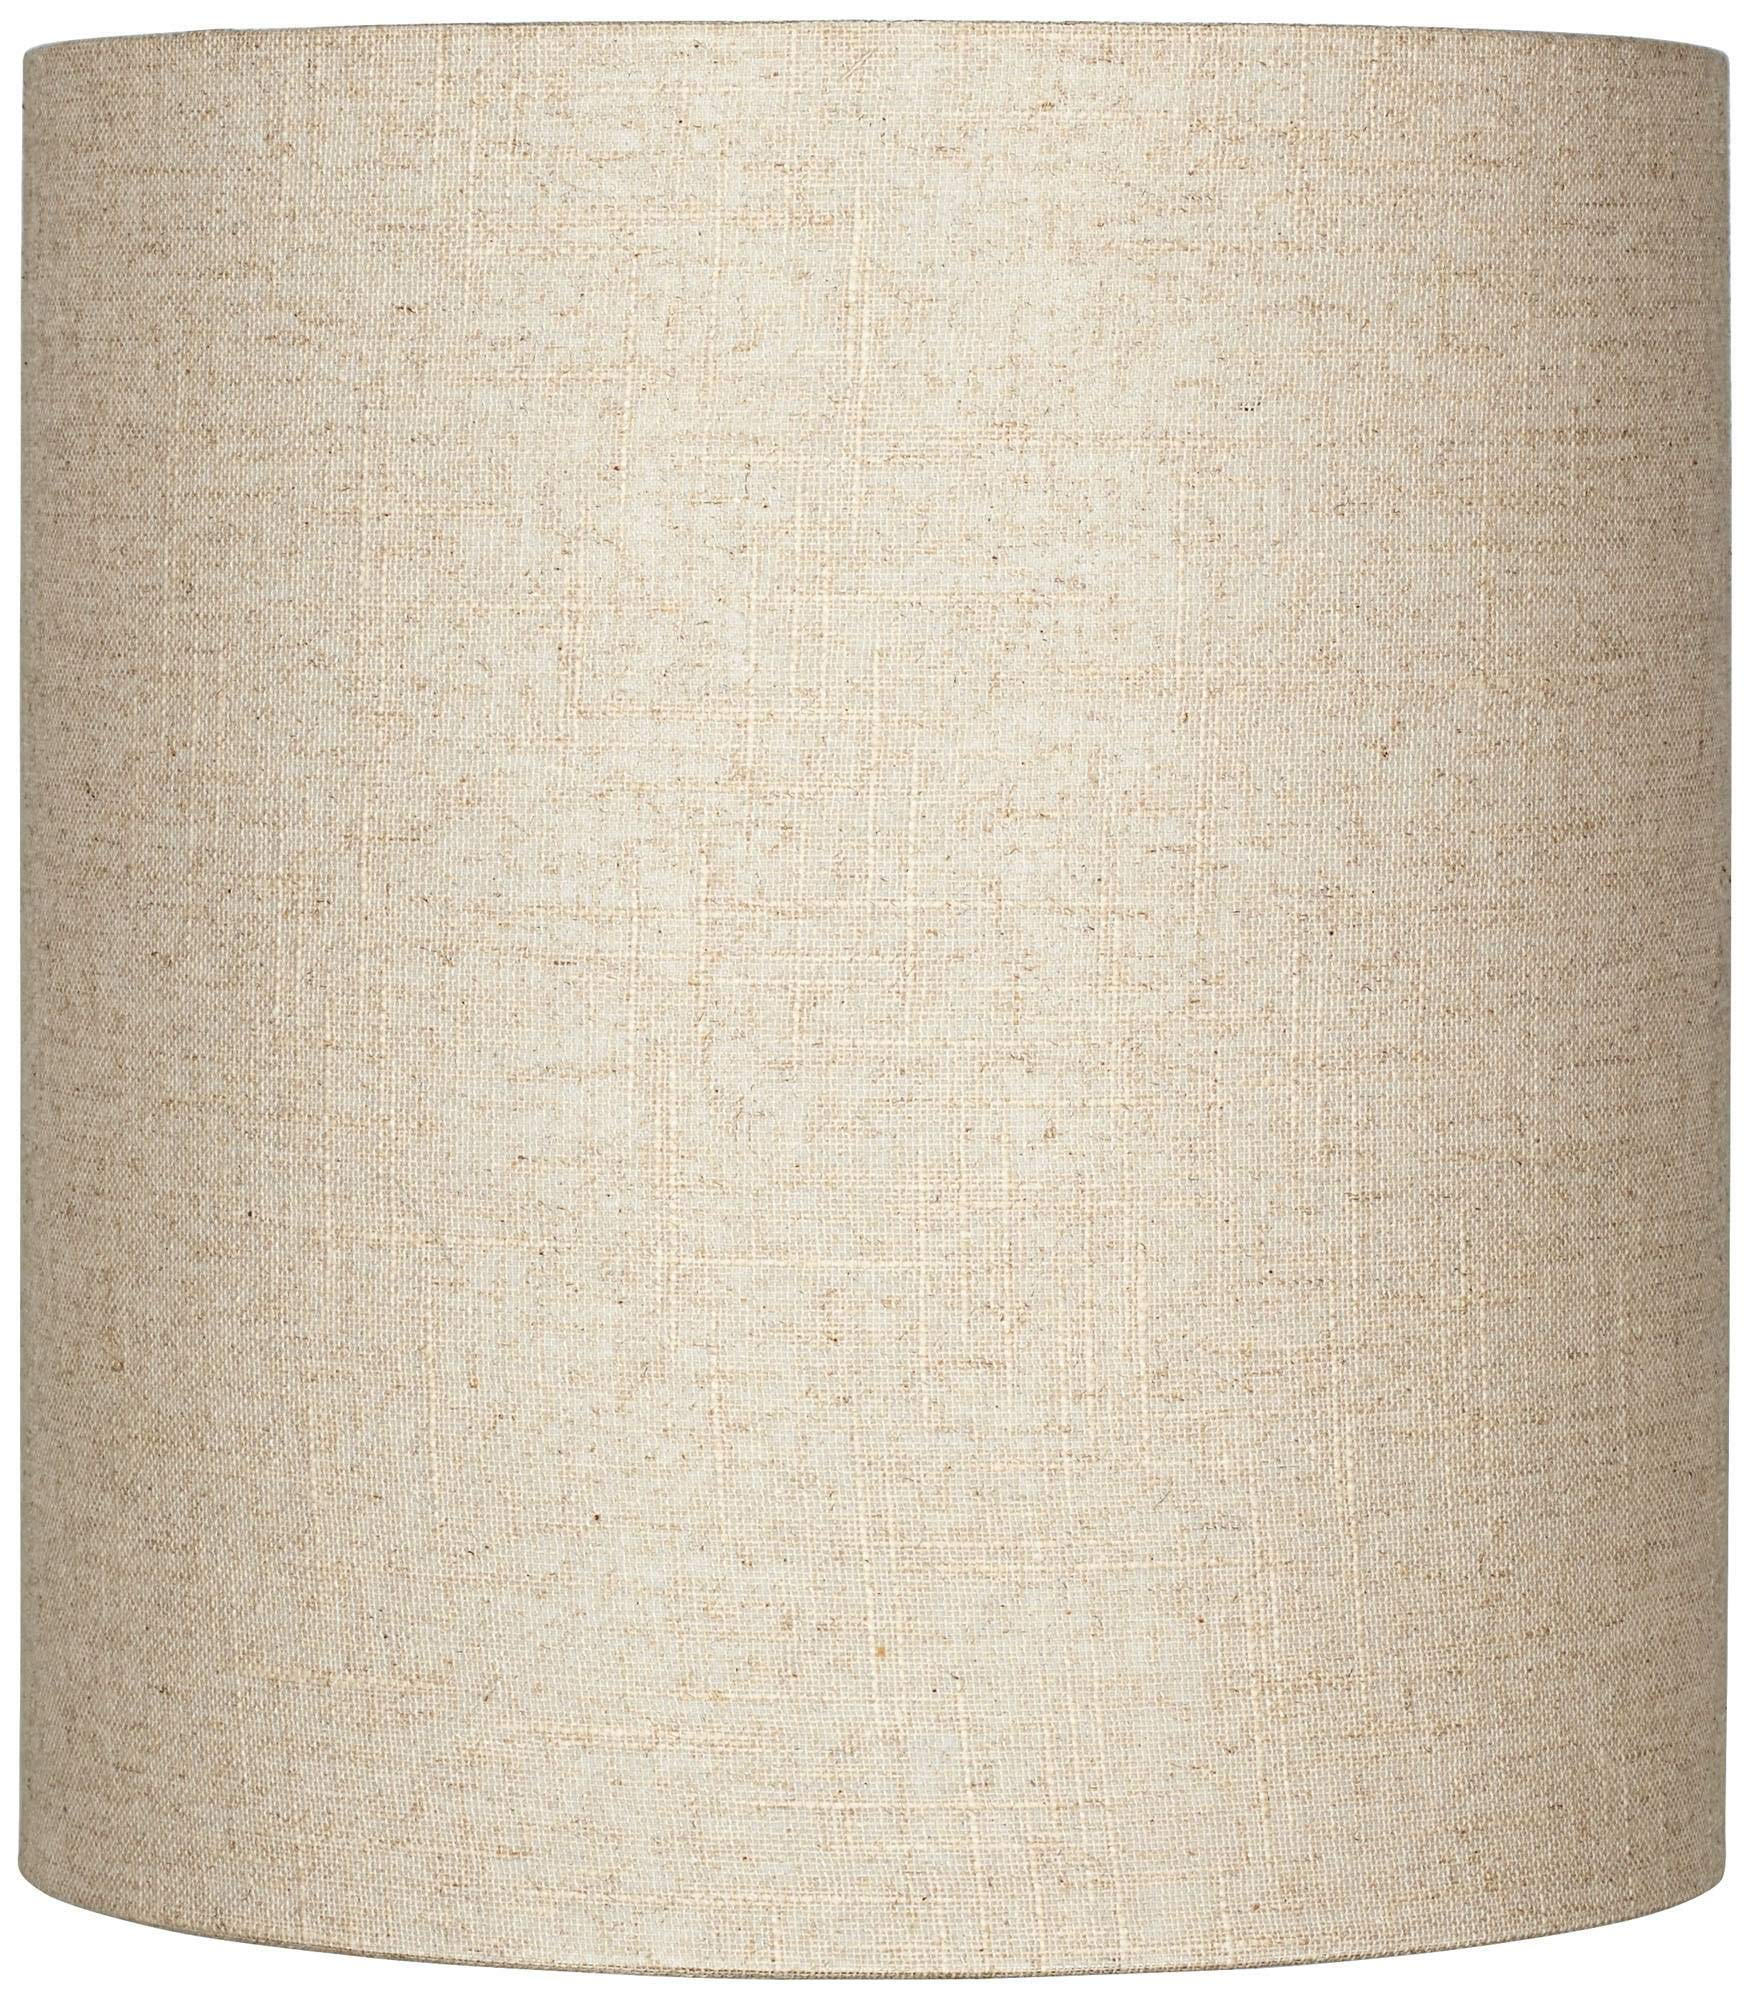 Oatmeal Tall Linen Drum Shade 14x14x15 (Spider) - Brentwood